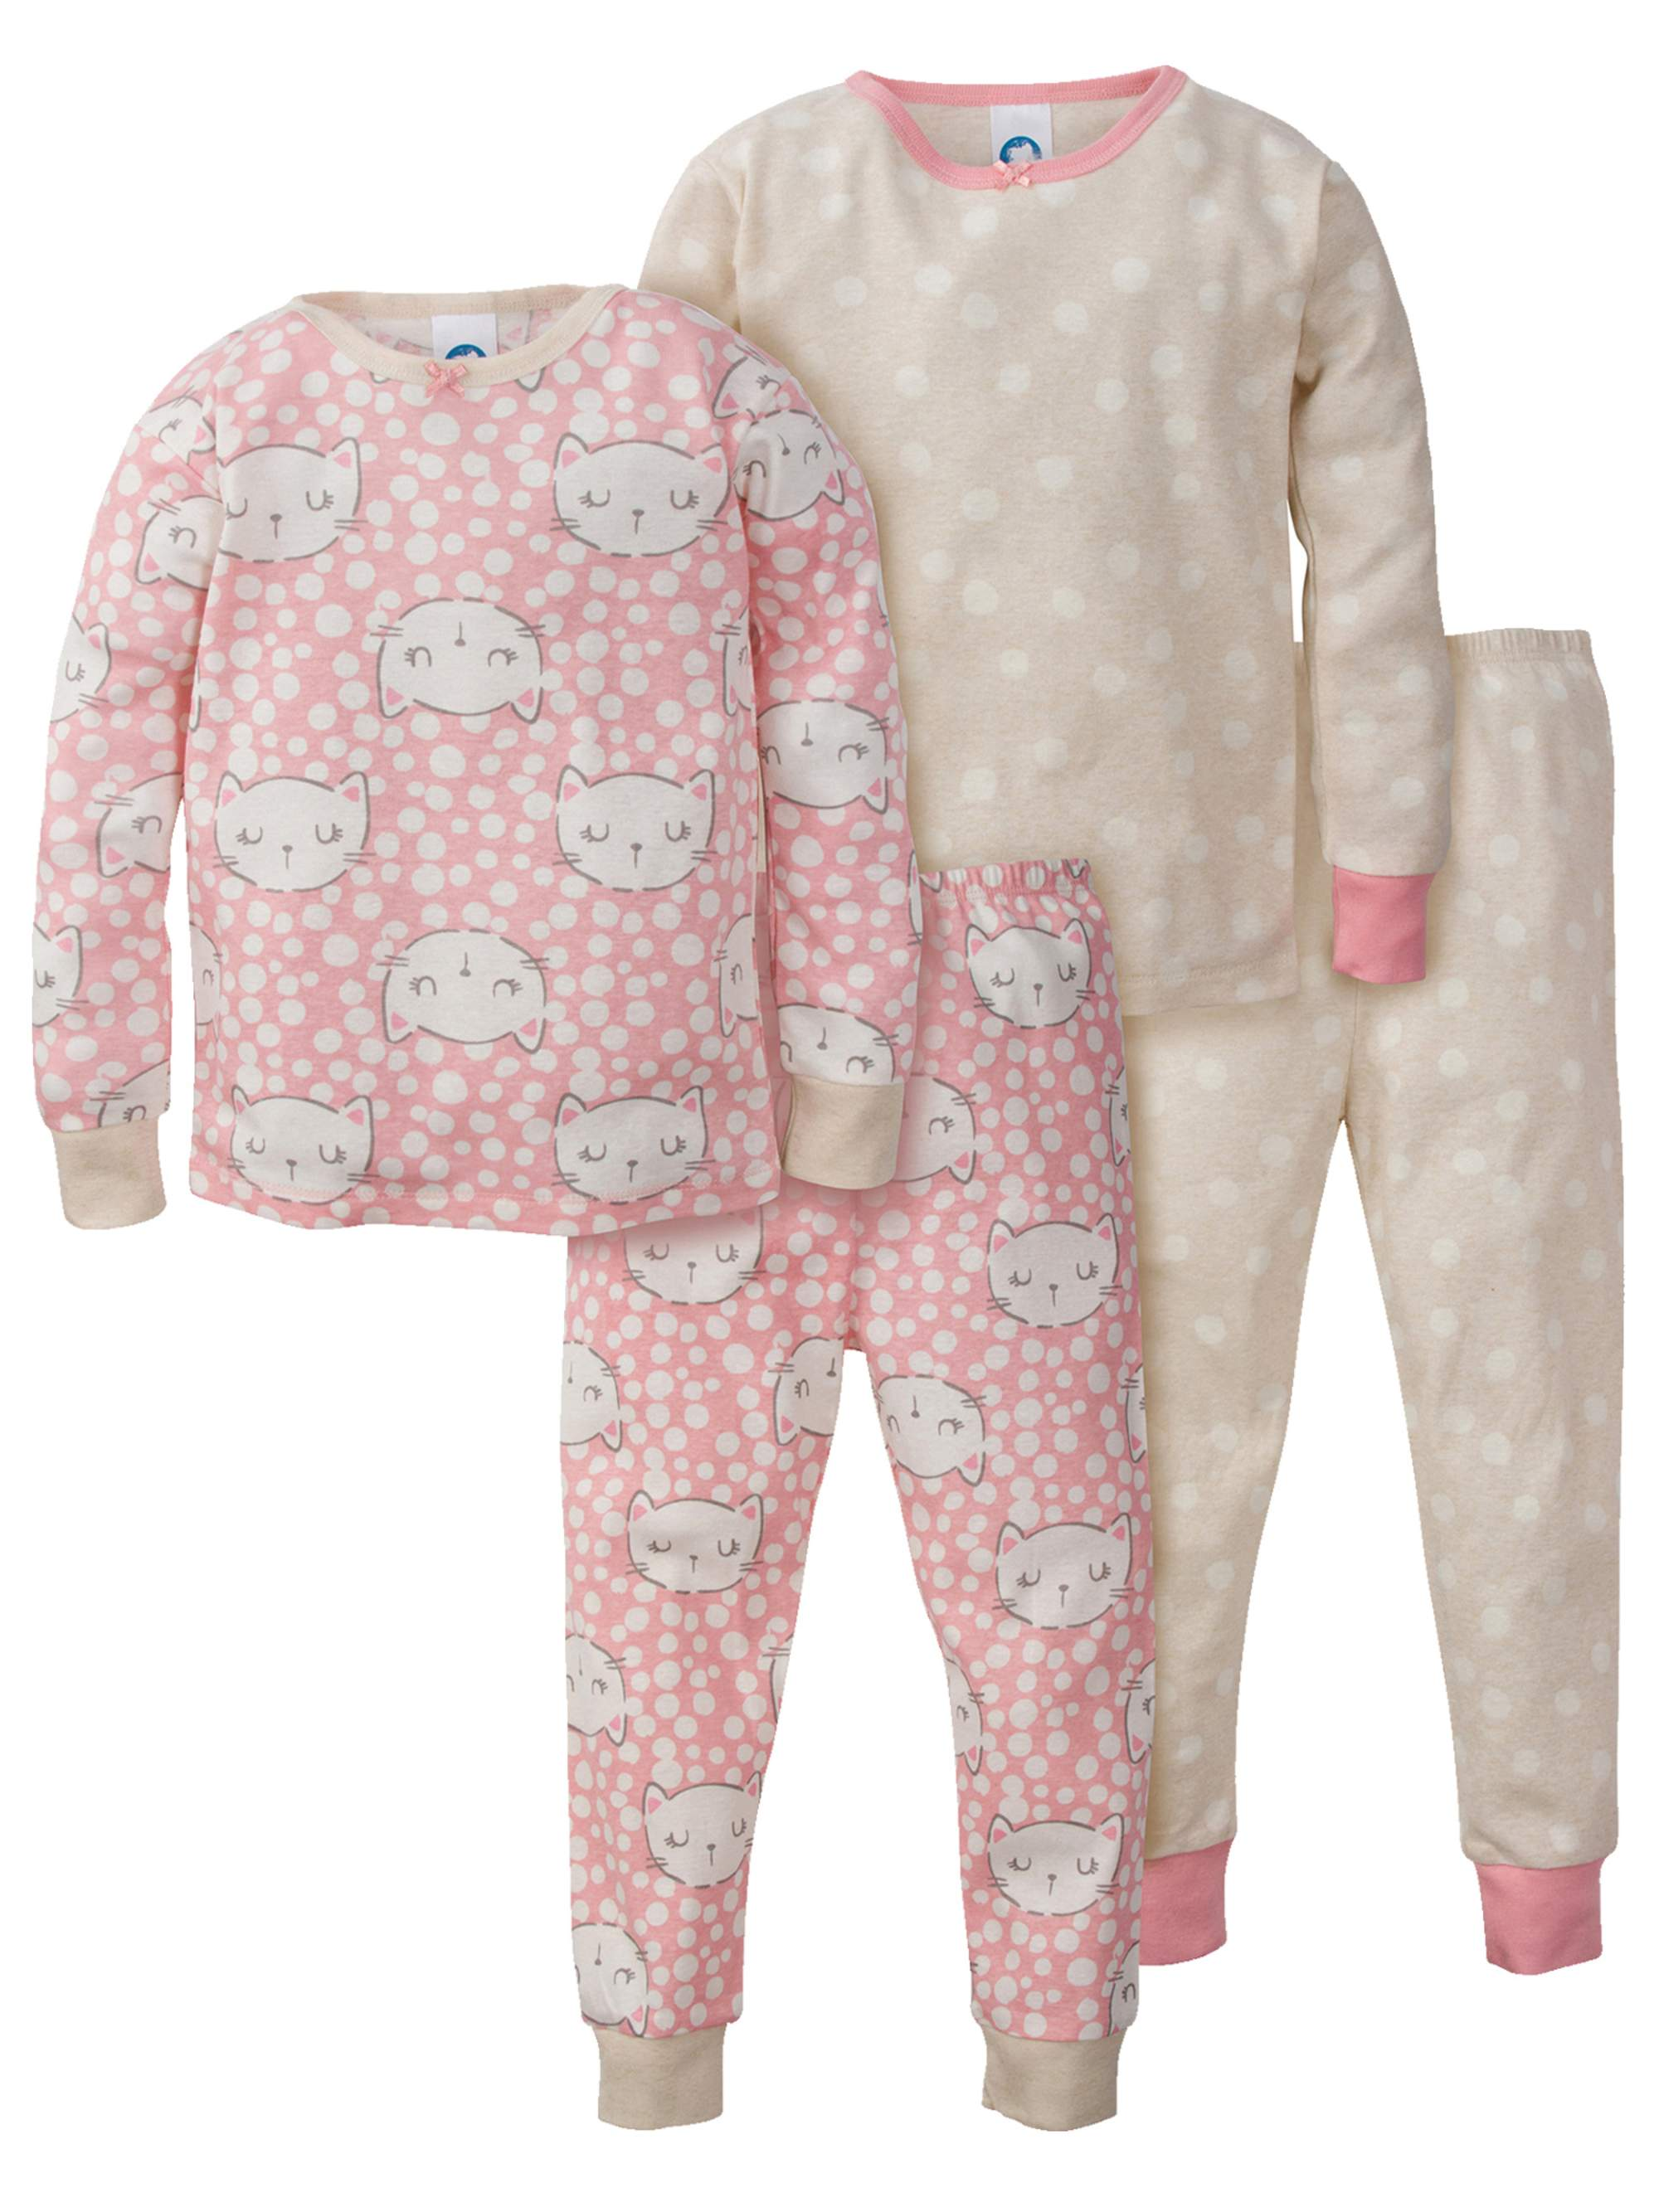 Organic Cotton Mix n Match Pajamas, 4pc Set (Baby Girls & Toddler Girls)